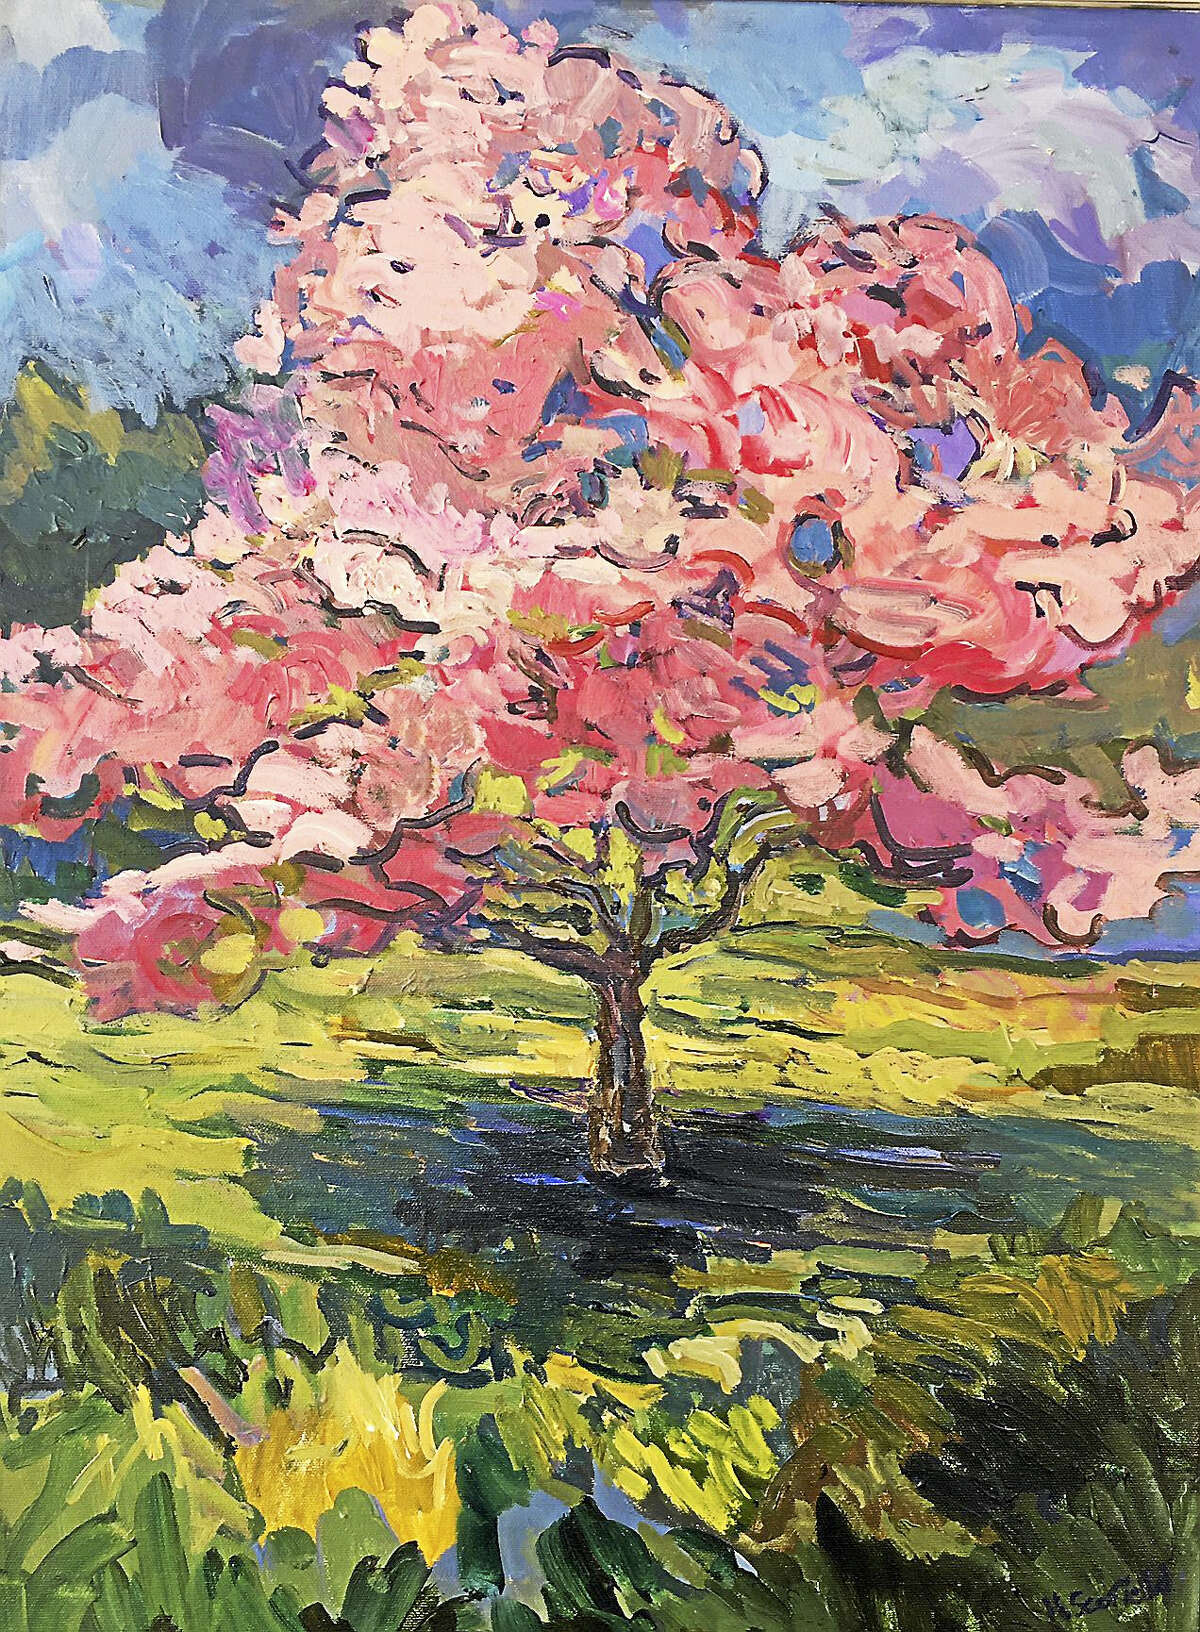 Paintings by Heather Scofield will be shown at the Gunn Memorial Library in Washington through Sept. 9, with an opening reception on July 29.